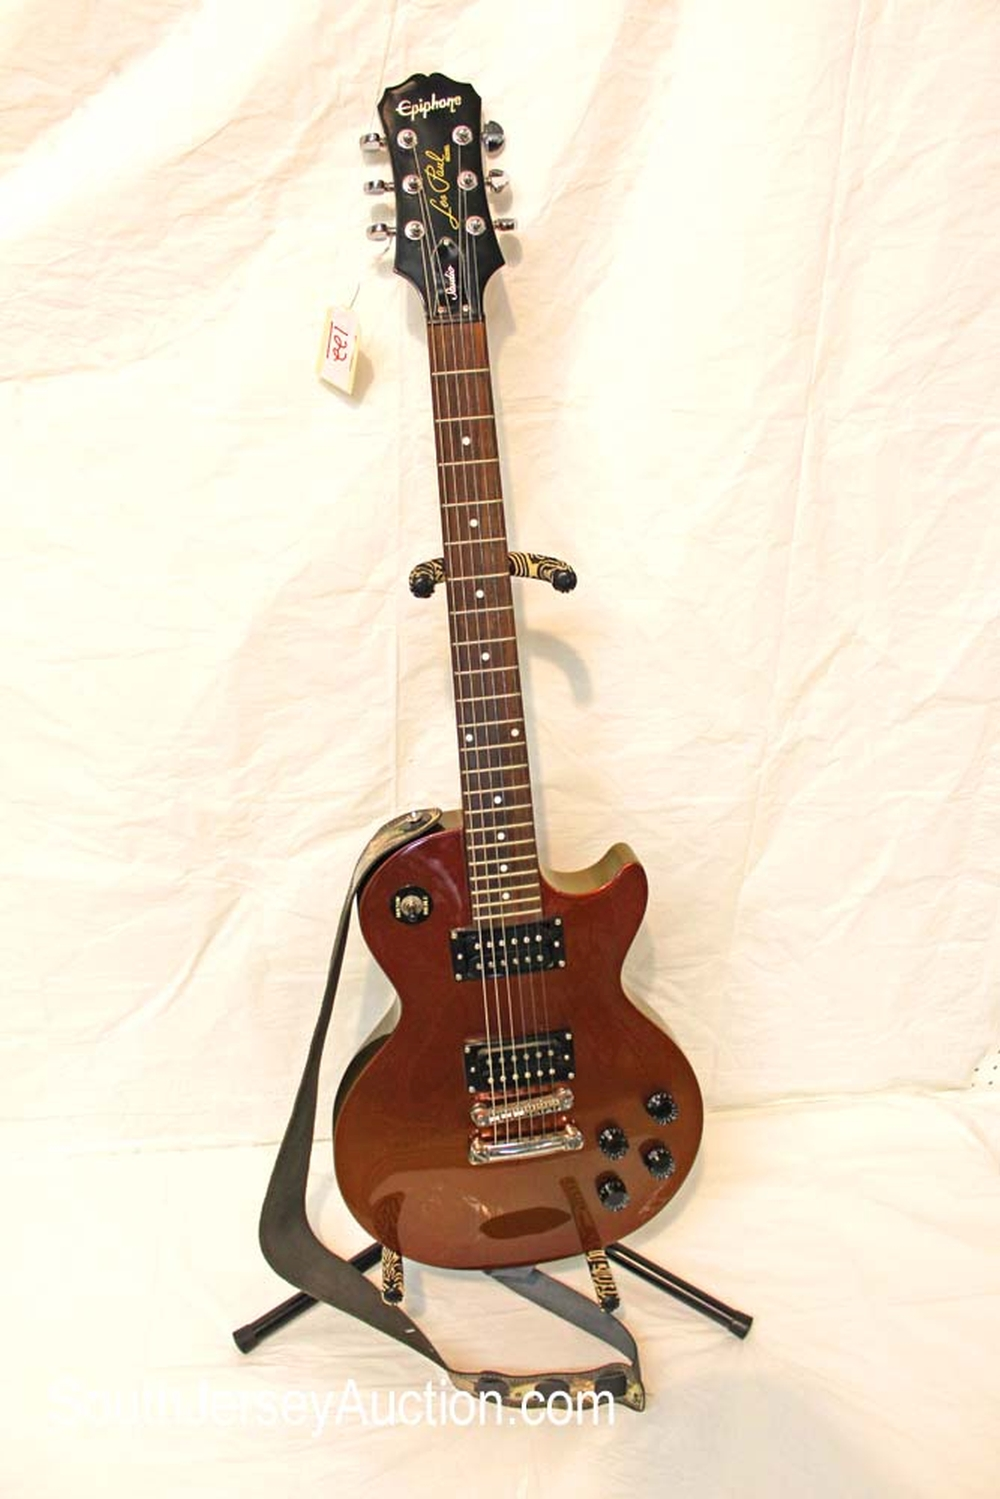 2007 Epiphone  Studio Les Paul guitar, in the Chameleon Copper color, Limited Edition Custom Shop, RARE grover tuners, set neck, with rosewood fret board, and strap, s/n EE070309048, excellent shape